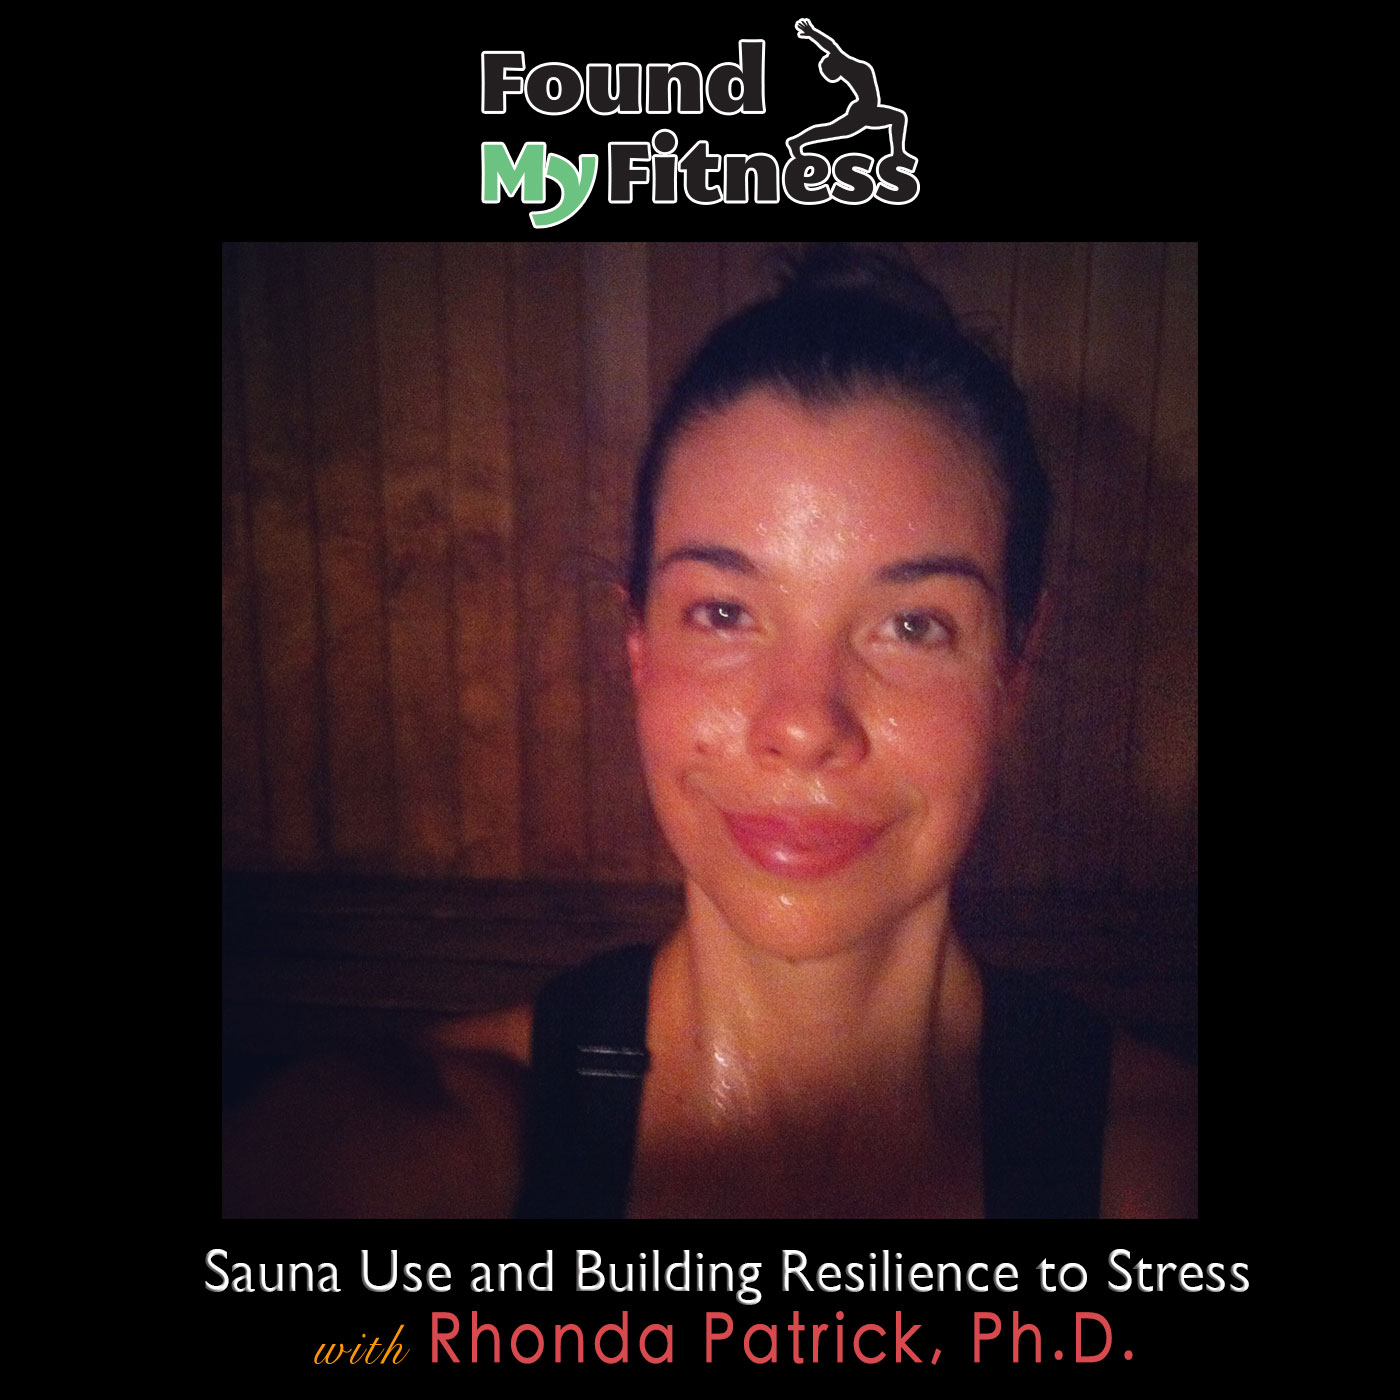 Sauna Use and Building Resilience to Stress with Dr. Rhonda Patrick